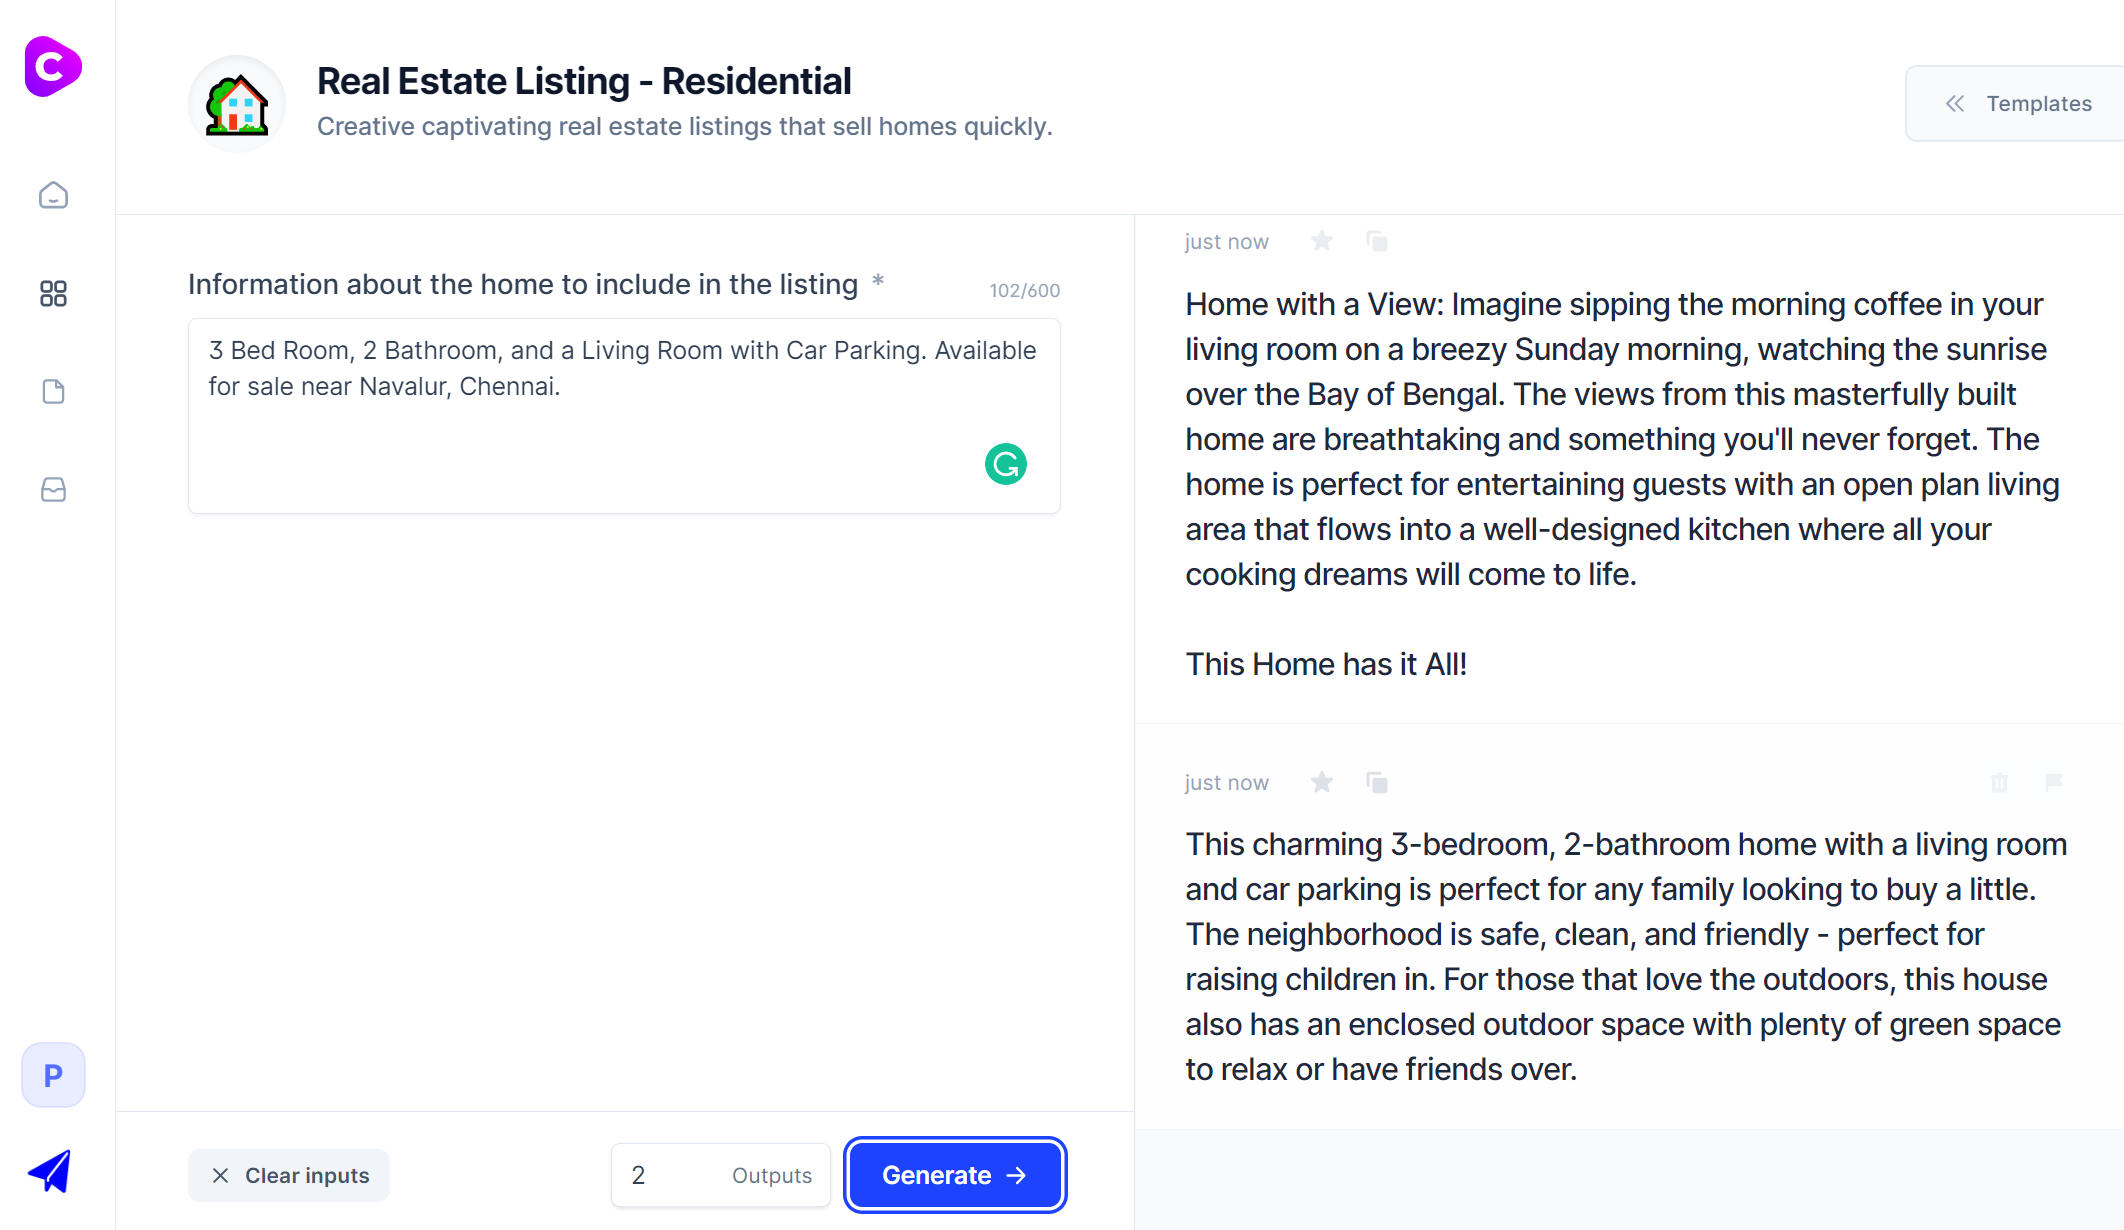 Jarvis.ai - Real Estate Listing Template